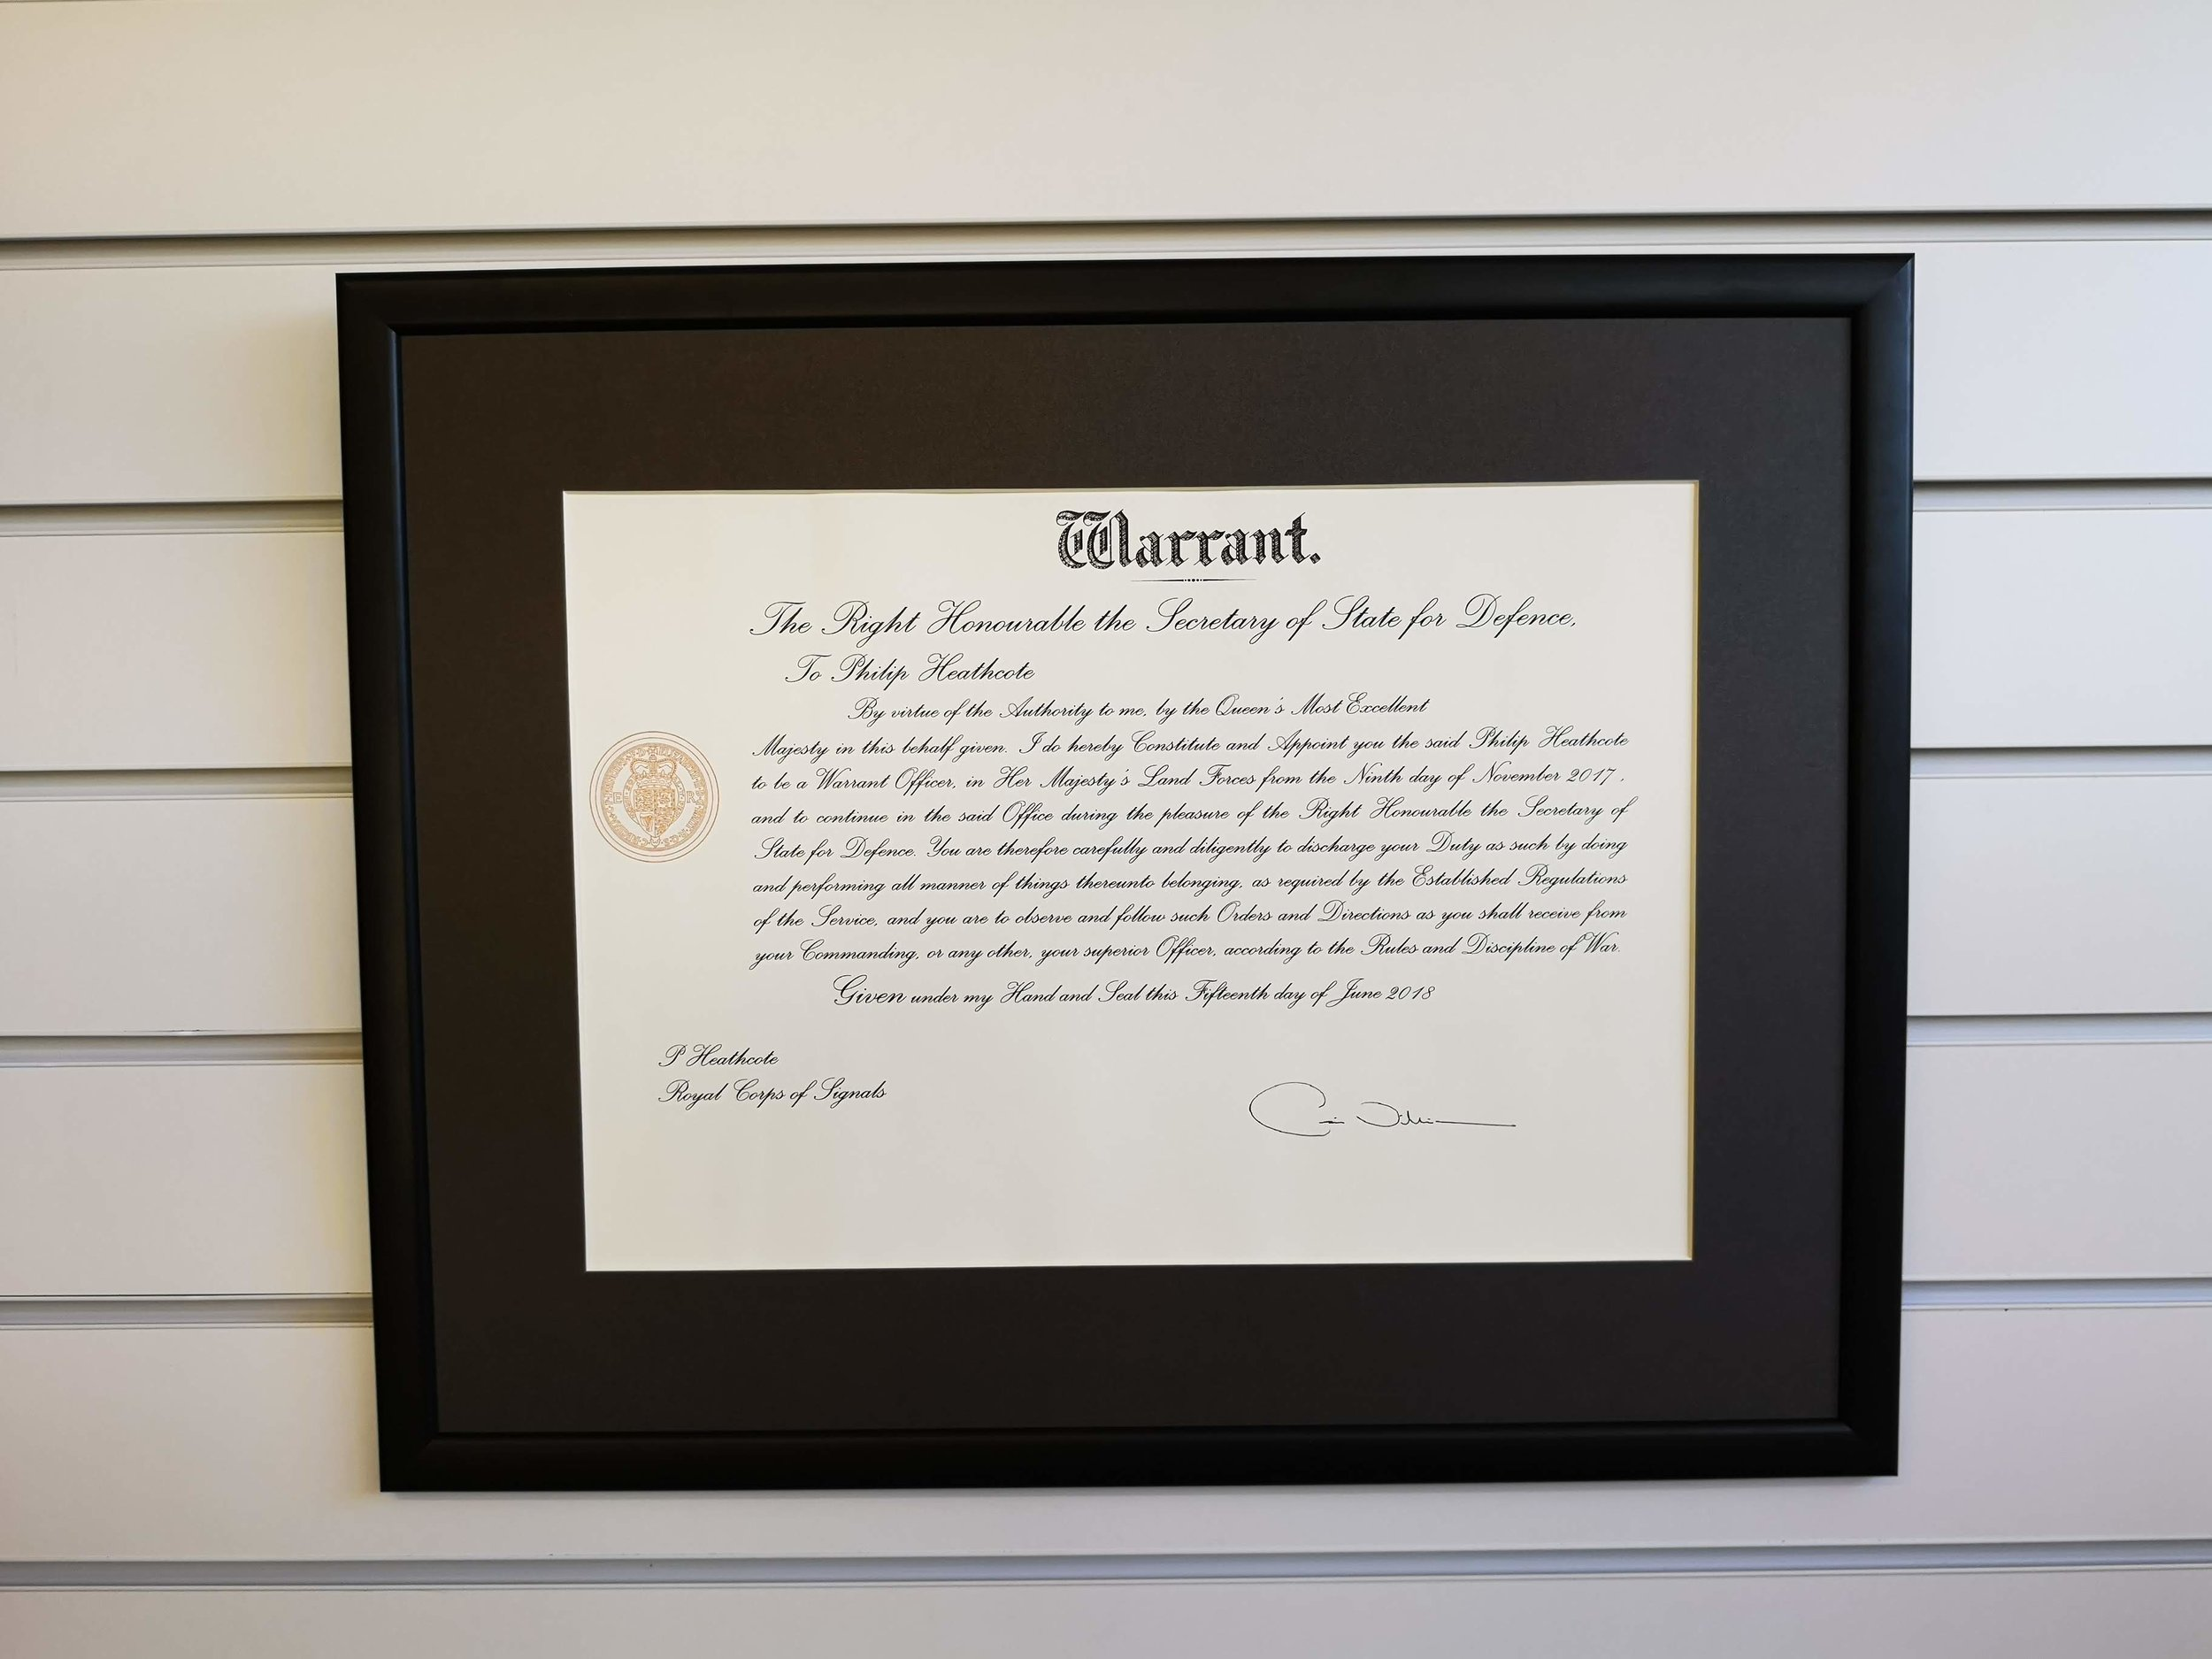 crayford-picture-framing-warrant .jpg